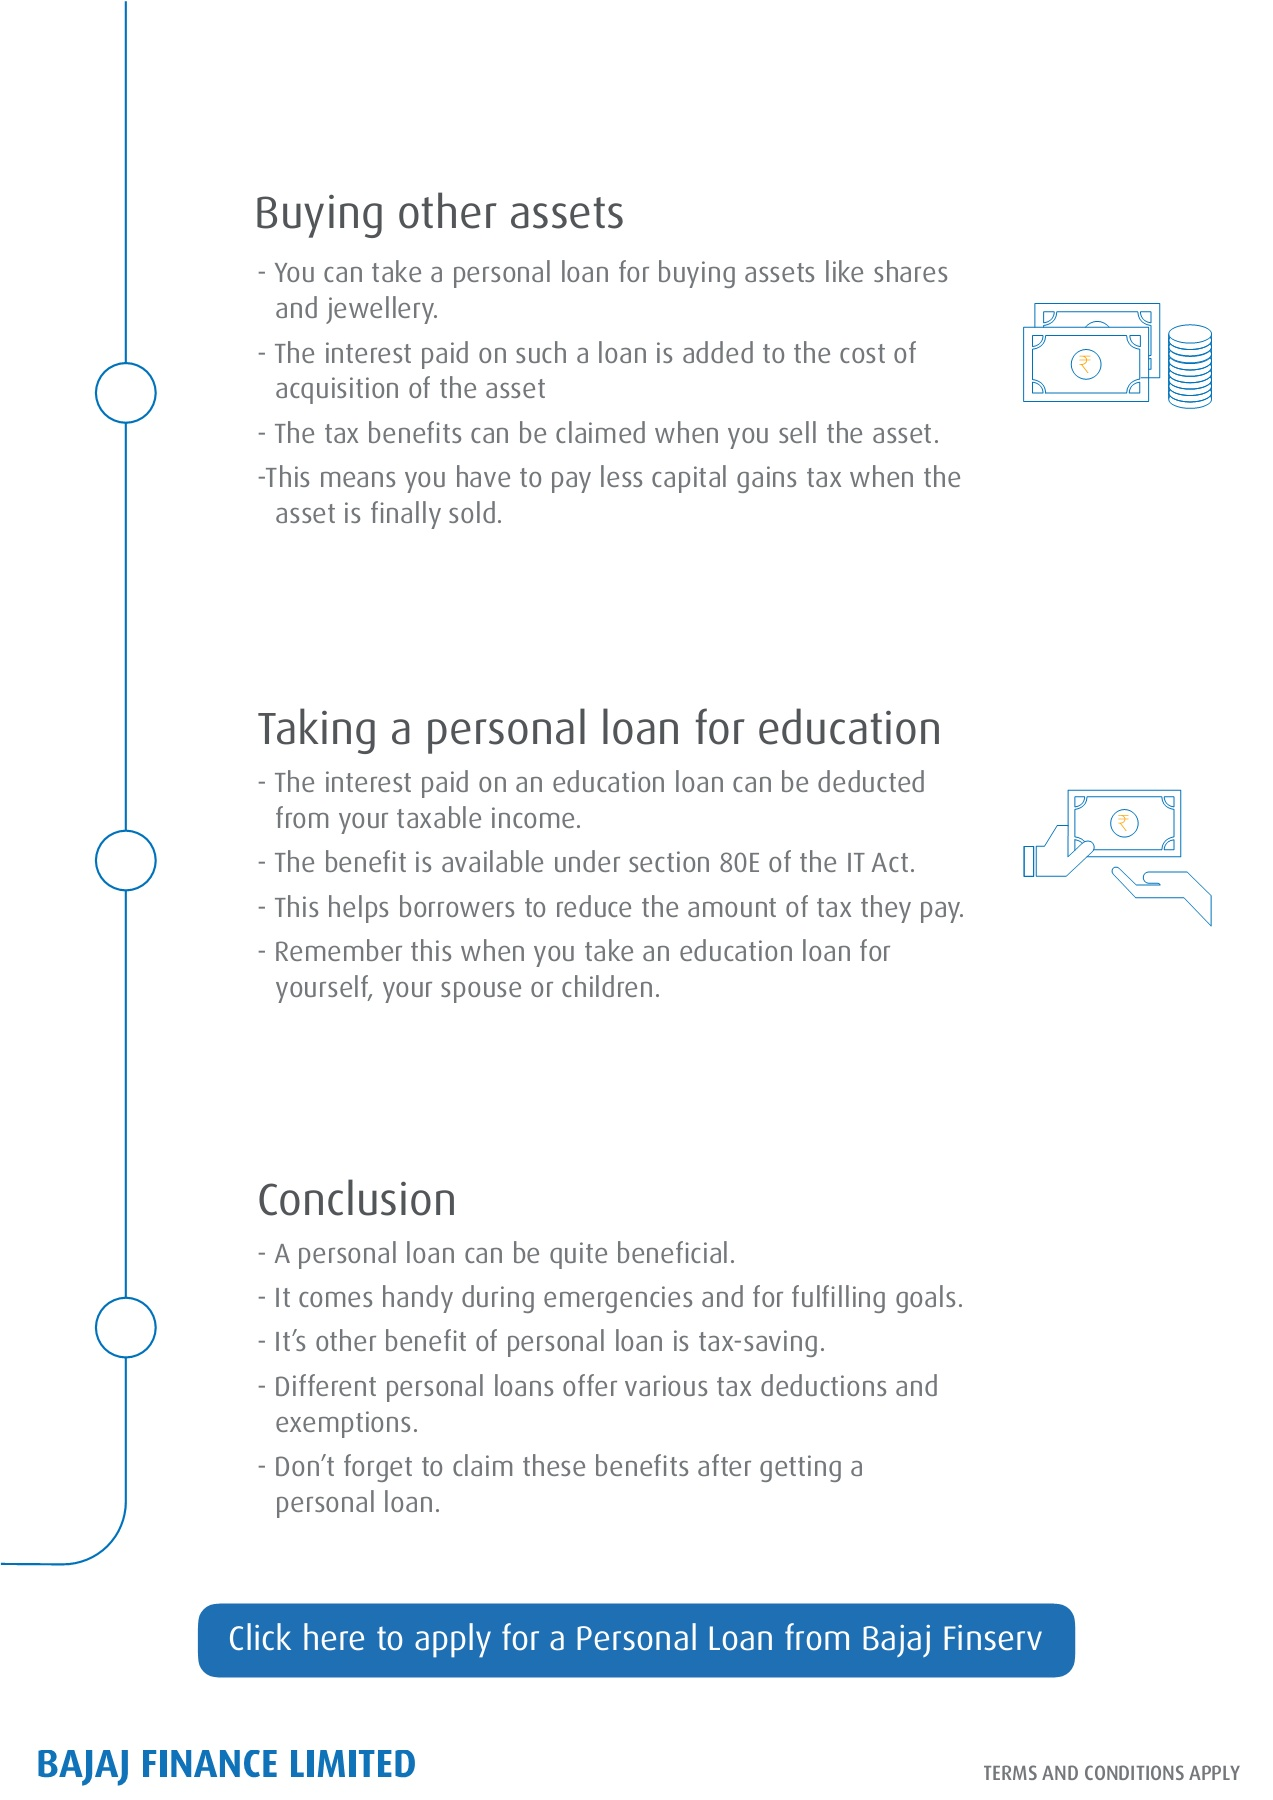 How can a loan be beneficial to the buyer